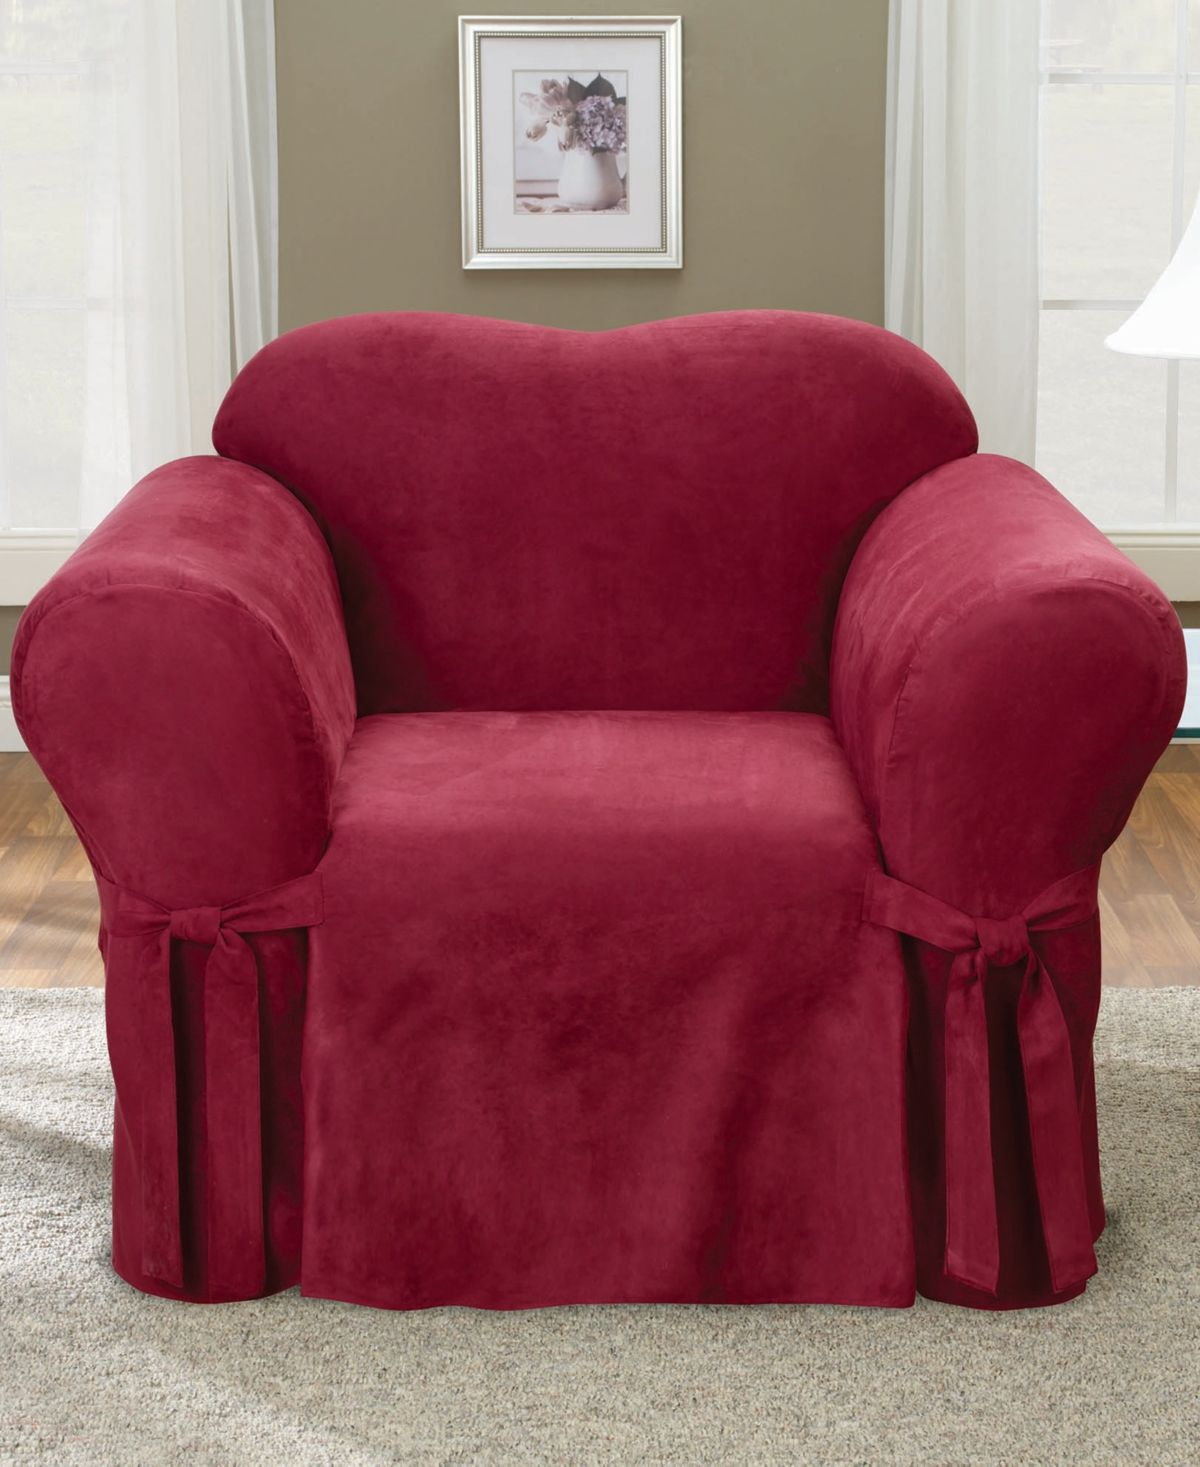 Sure Fit Soft Faux Suede Chair Slipcover Reviews Slipcovers Home Decor Macy S Slipcovers For Chairs Slipcovers Dining Room Chair Covers